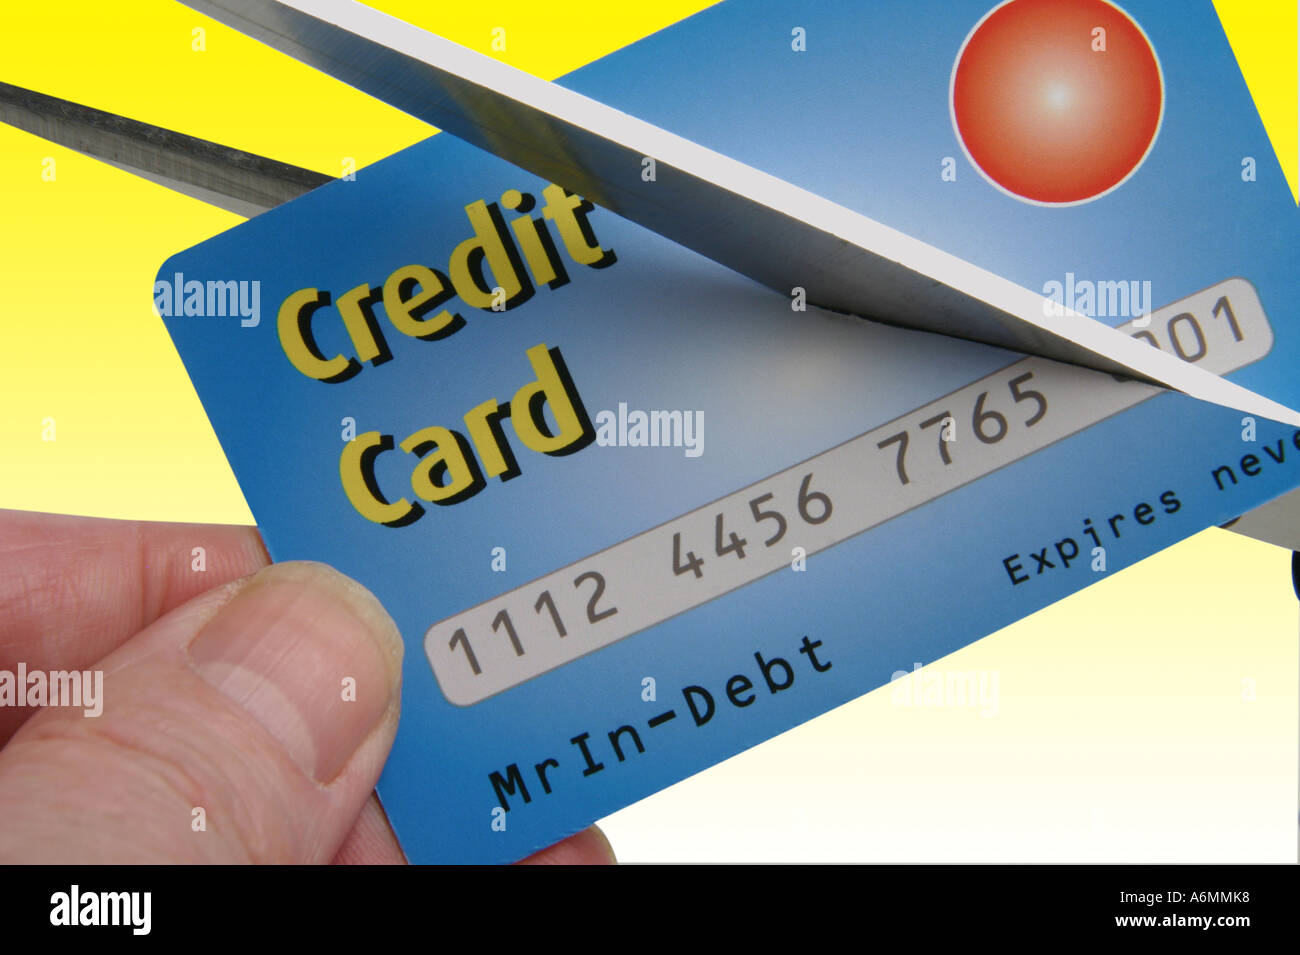 Credit card being cut in half by scissors Stock Photo: 6634295 - Alamy